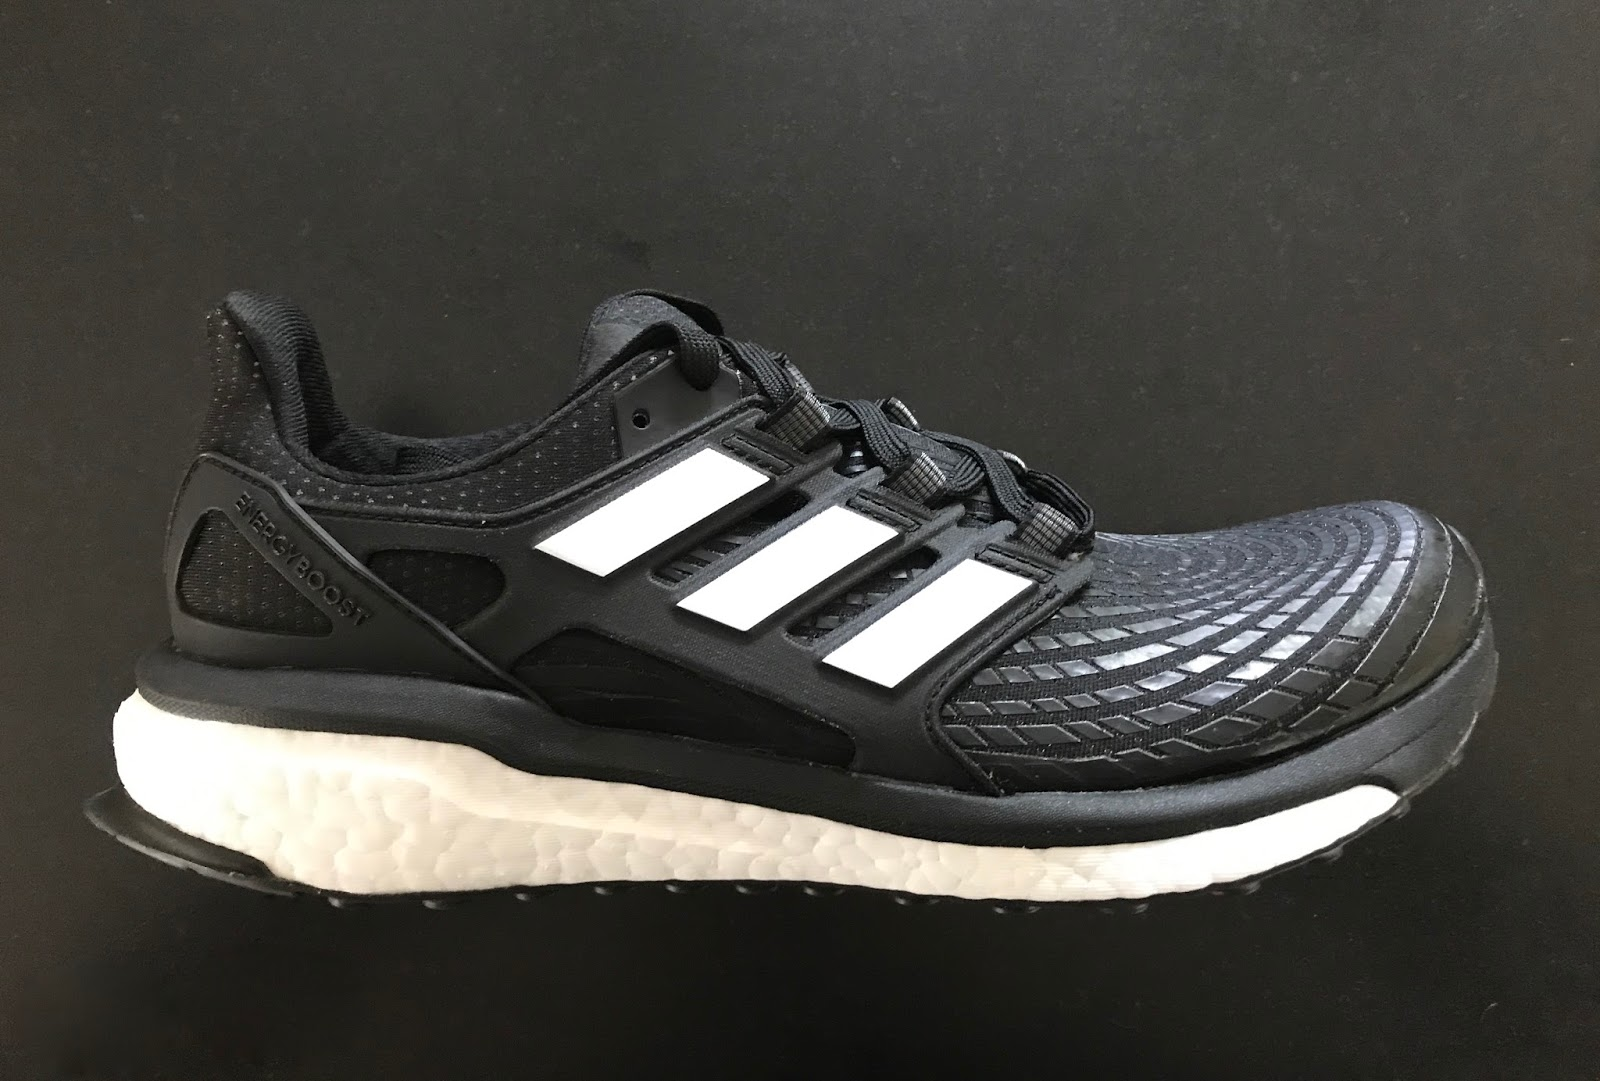 check out e2ddd edf9d The adidas Energy Boost 2017 edition is a heavily cushioned premium neutral  daily trainer. It is now called Energy Boost with no numbering after as ...